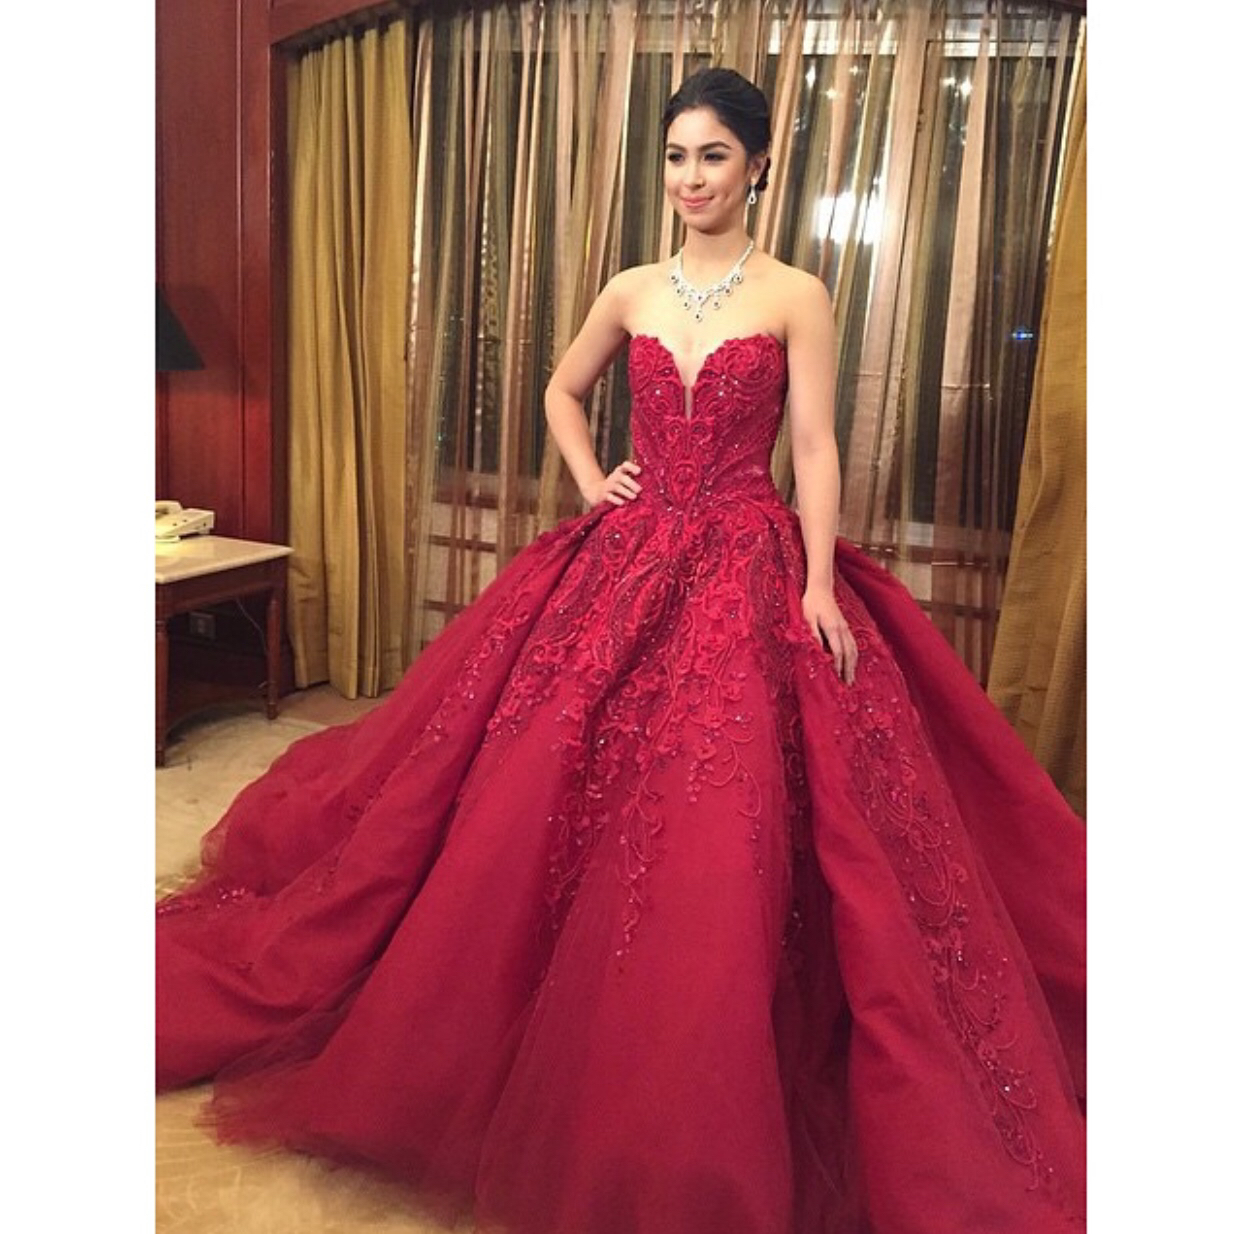 julia barreto debut gown discovered by Nicole Kusumi